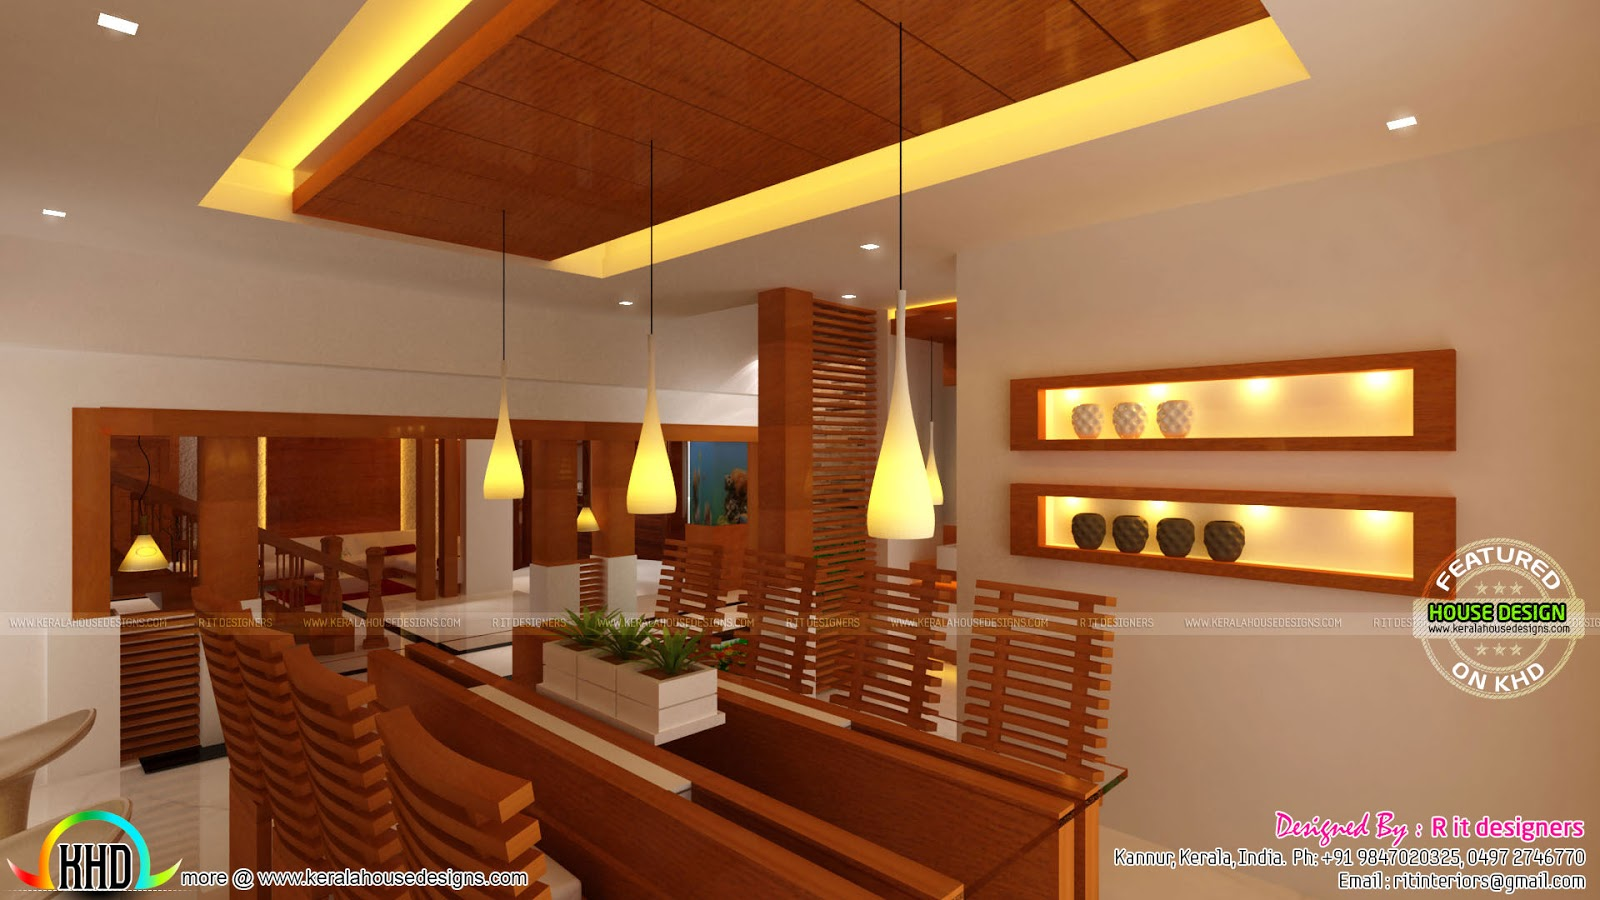 Wooden finish interior designs kerala home design and for Interior design for dining area